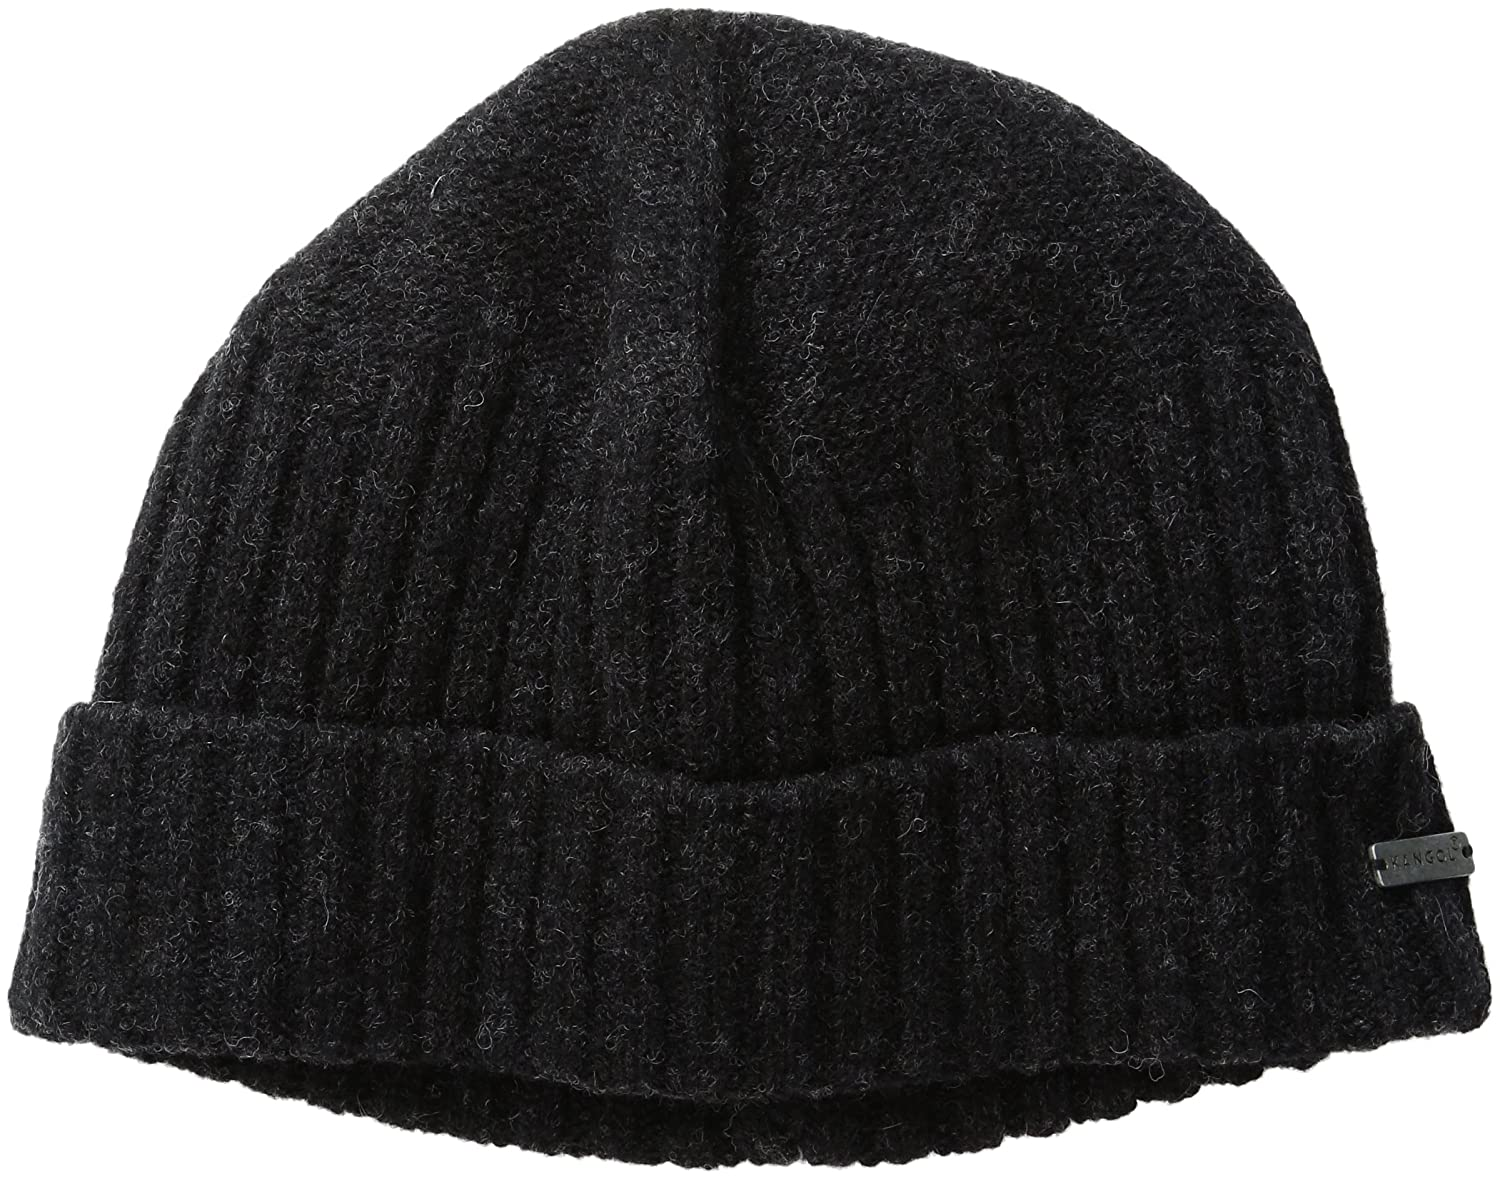 504d7296e42 Kangol Lambswool Pull on Beanie